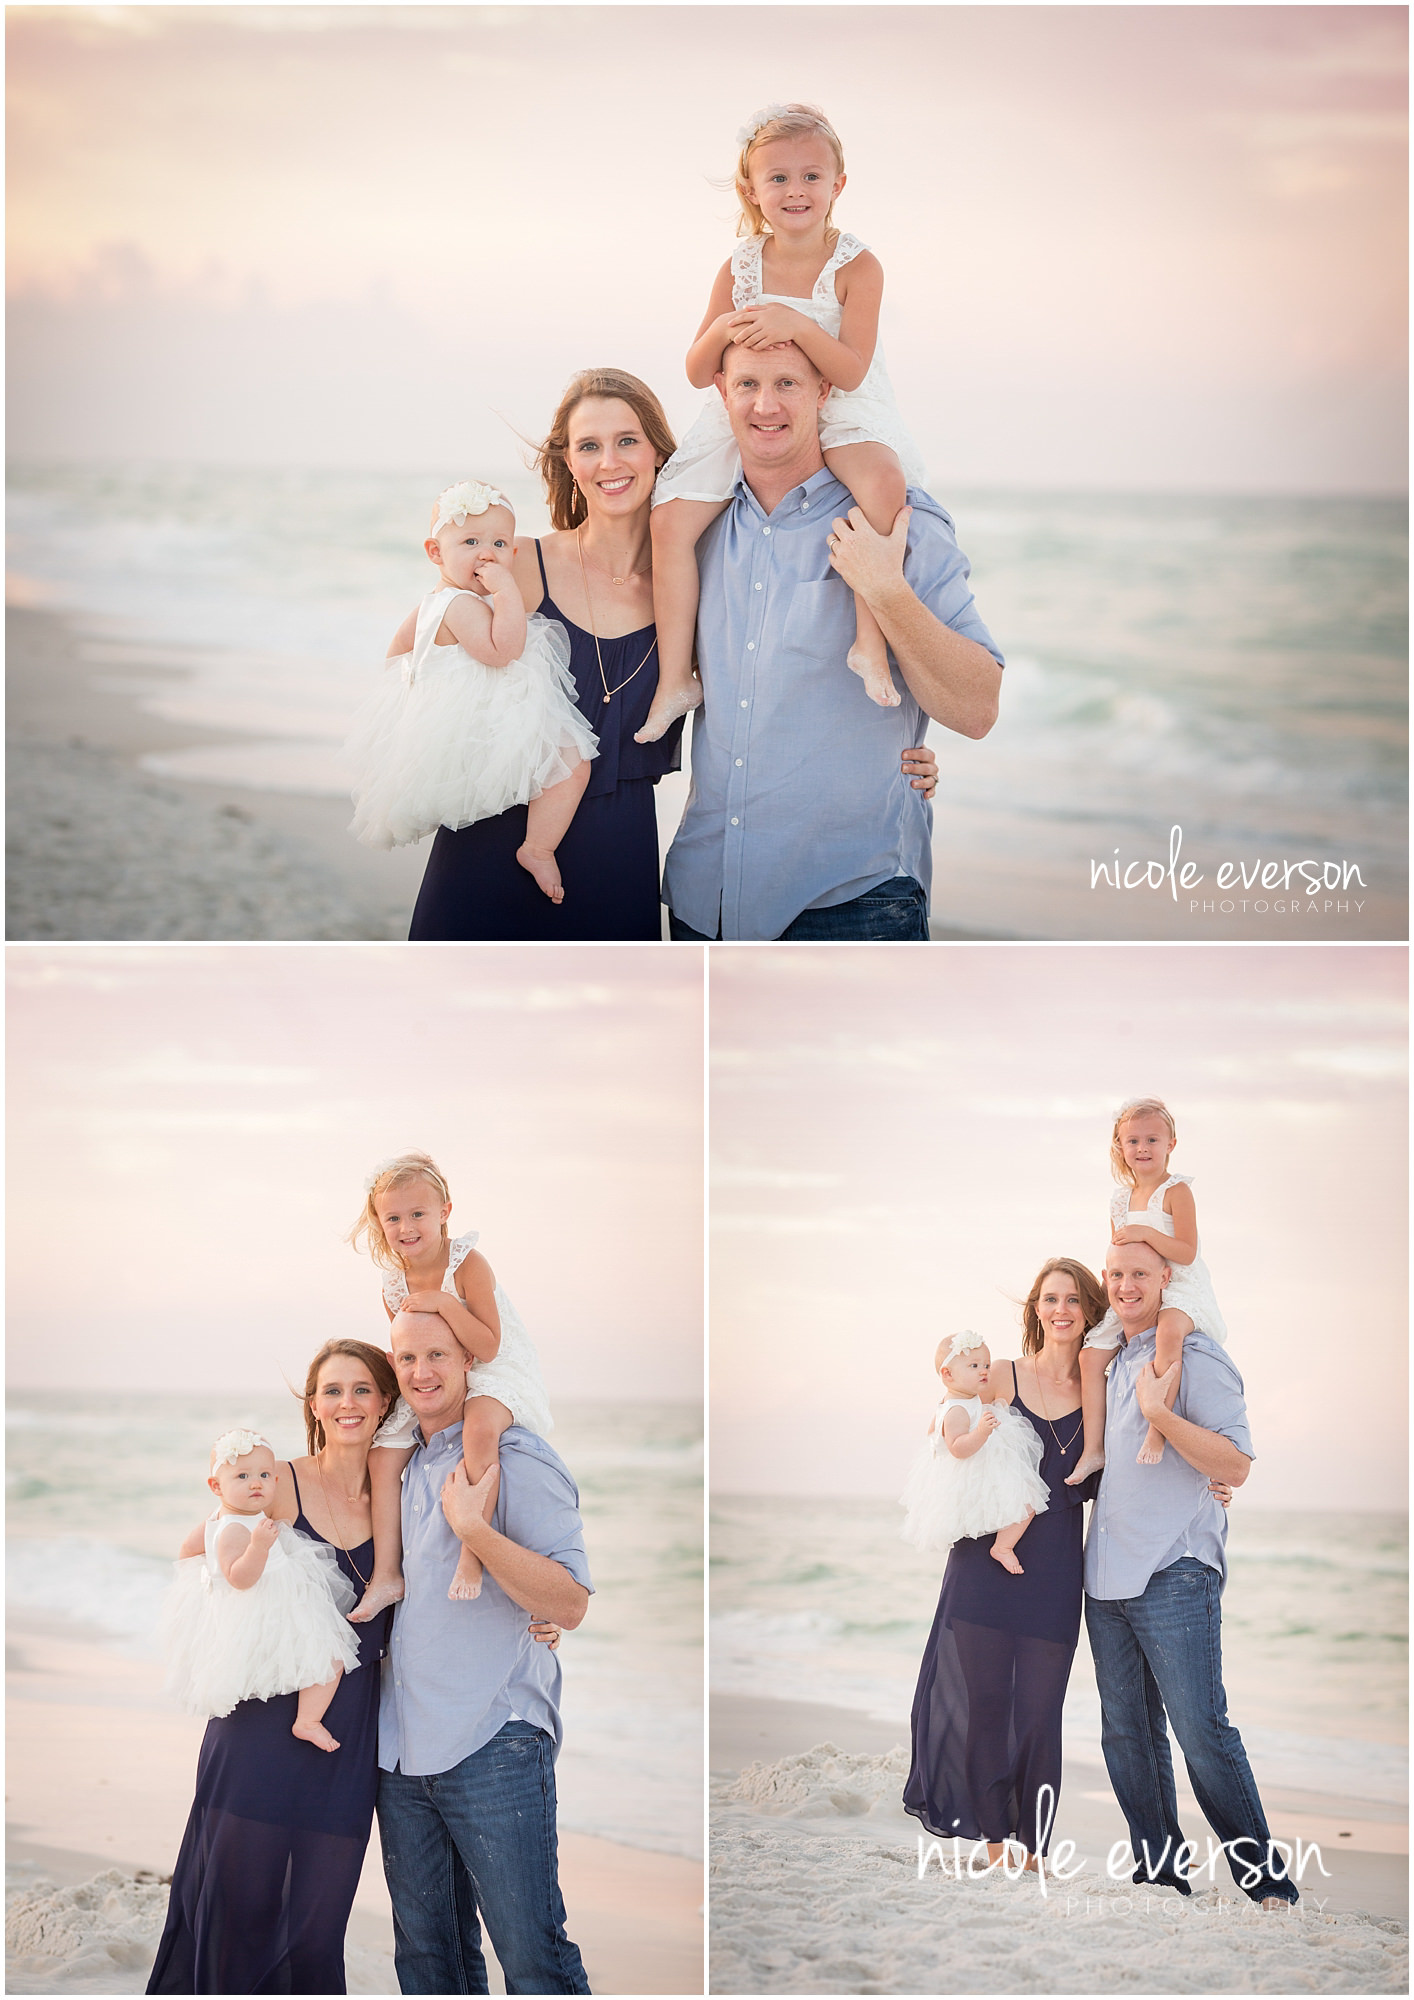 sunrise beach family portraits with navy and grey outfits